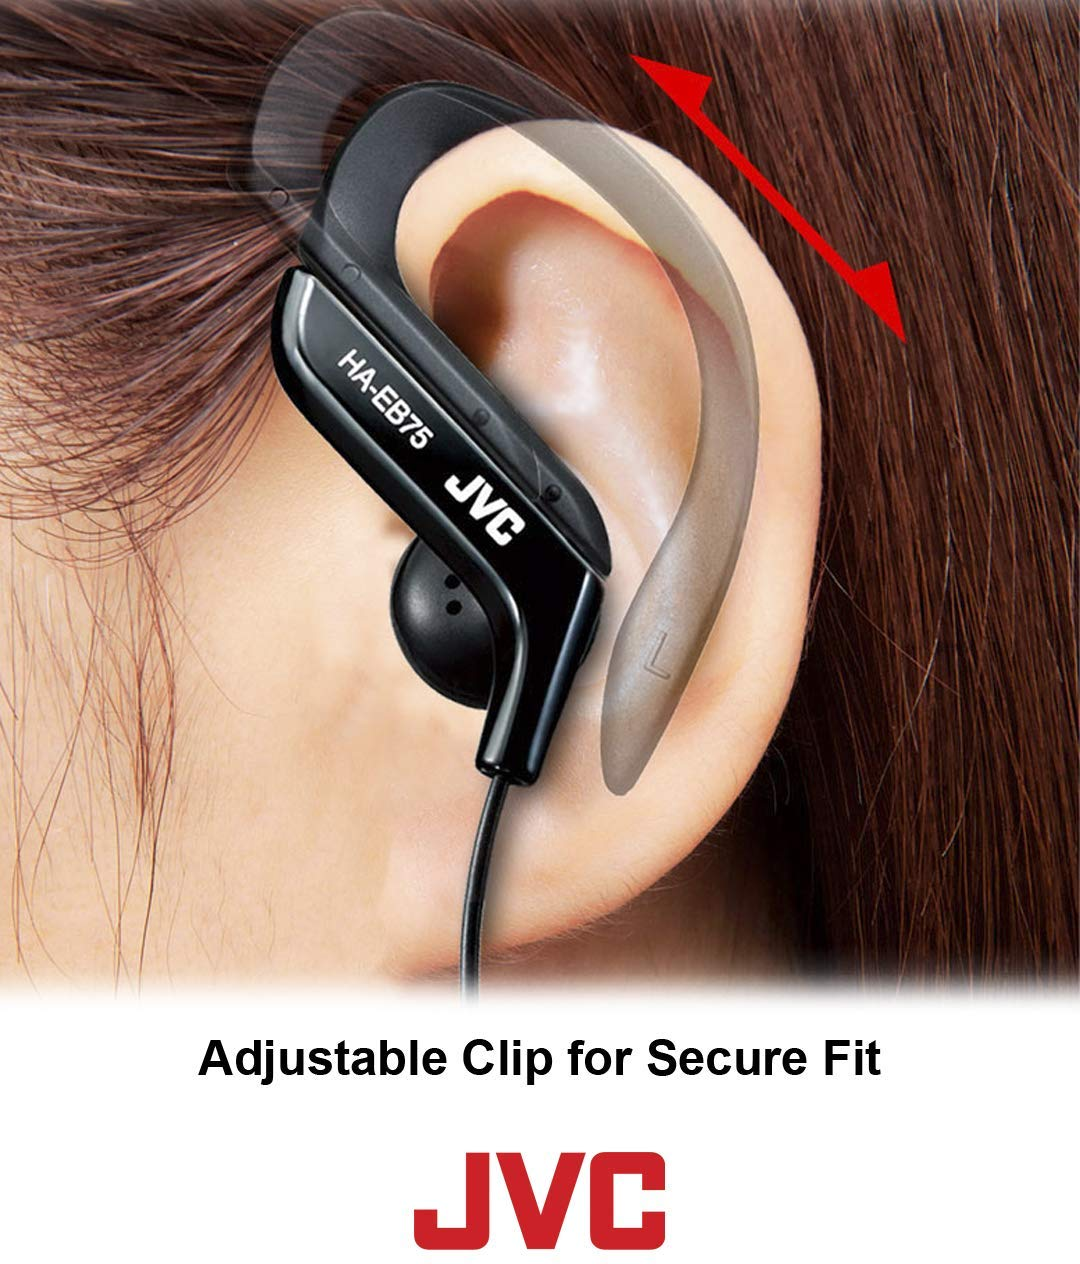 JVC Clip Style Headphone Blue and White Lightweight and Comfortable Ear Clip $14.99